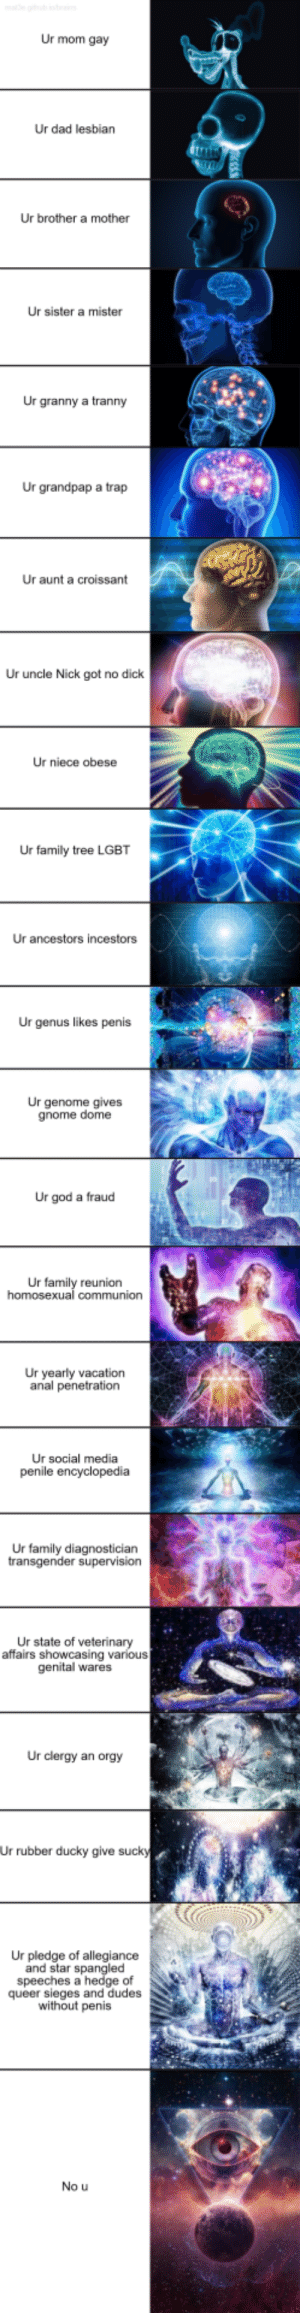 Dad, Family, and God: Ur mom gay  Ur dad lesbian  Ur brother a mother  Ur sister a mister  Ur granny a tranny  Ur grandpap a trap  Ur aunt a croissant  Ur uncle Nick got no dick  Ur niece obese  Ur family tree LGBT  Ur ancestors incestors  Ur genus likes penis  Ur genome gives  gnome dome  Ur god a fraud  Ur family reunion  Ur yearly vacation  anal penetration  Ur social media  Ur family diagnosticiarn  Ur state of veterinary  affairs showcasing various  genital wares  Ur clergy an orgy  Ur rubber ducky give suck  Ur pledge of allegiance  and star spangle  speeches a hedge of  queer sieges and dudes  without penis  No u Now that its over, I compiled the entire ur mom gay chain